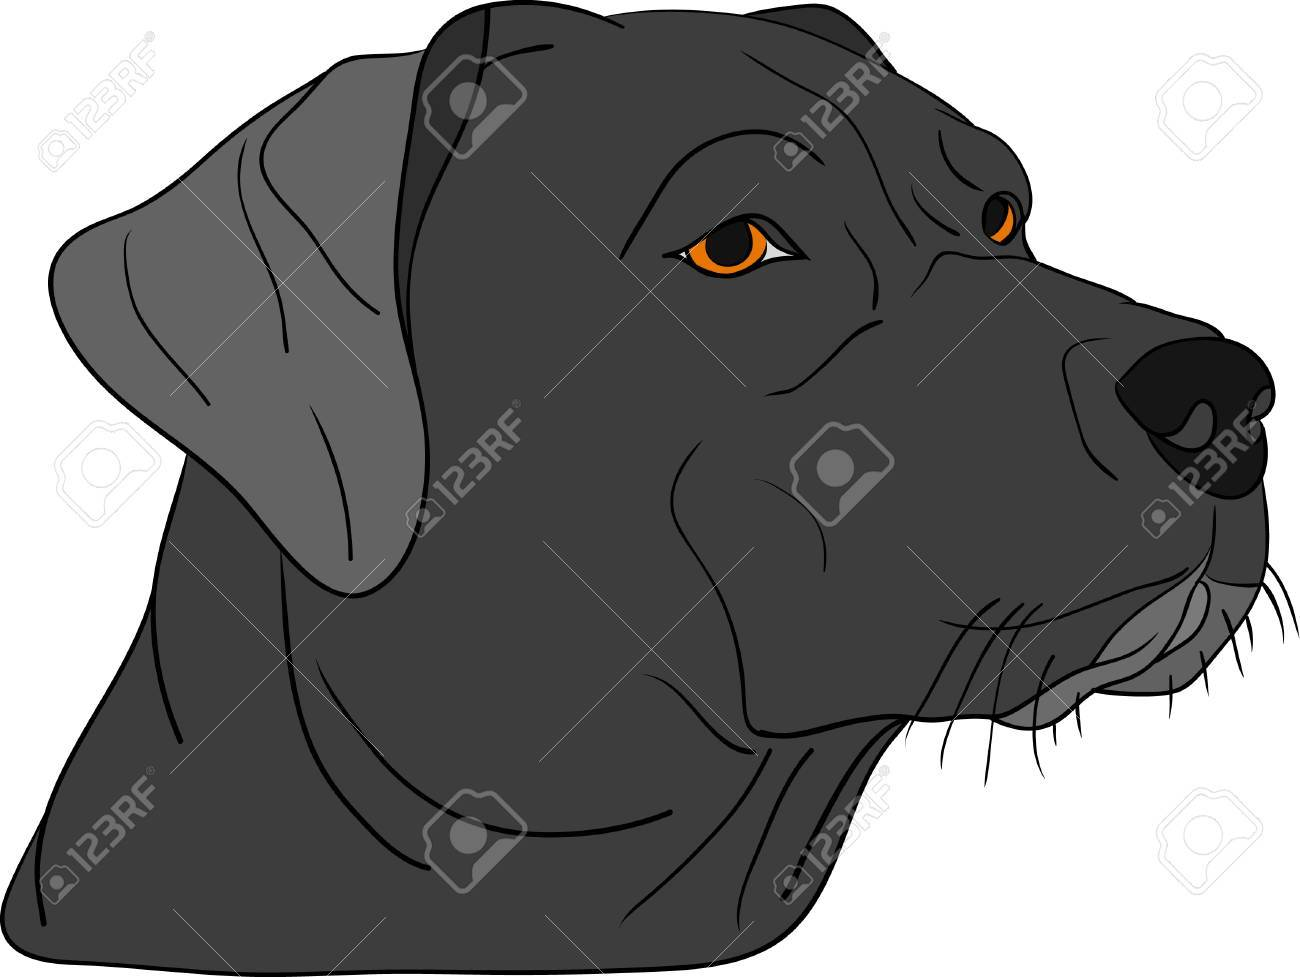 vector - dog head isolated on background Stock Vector - 5752435